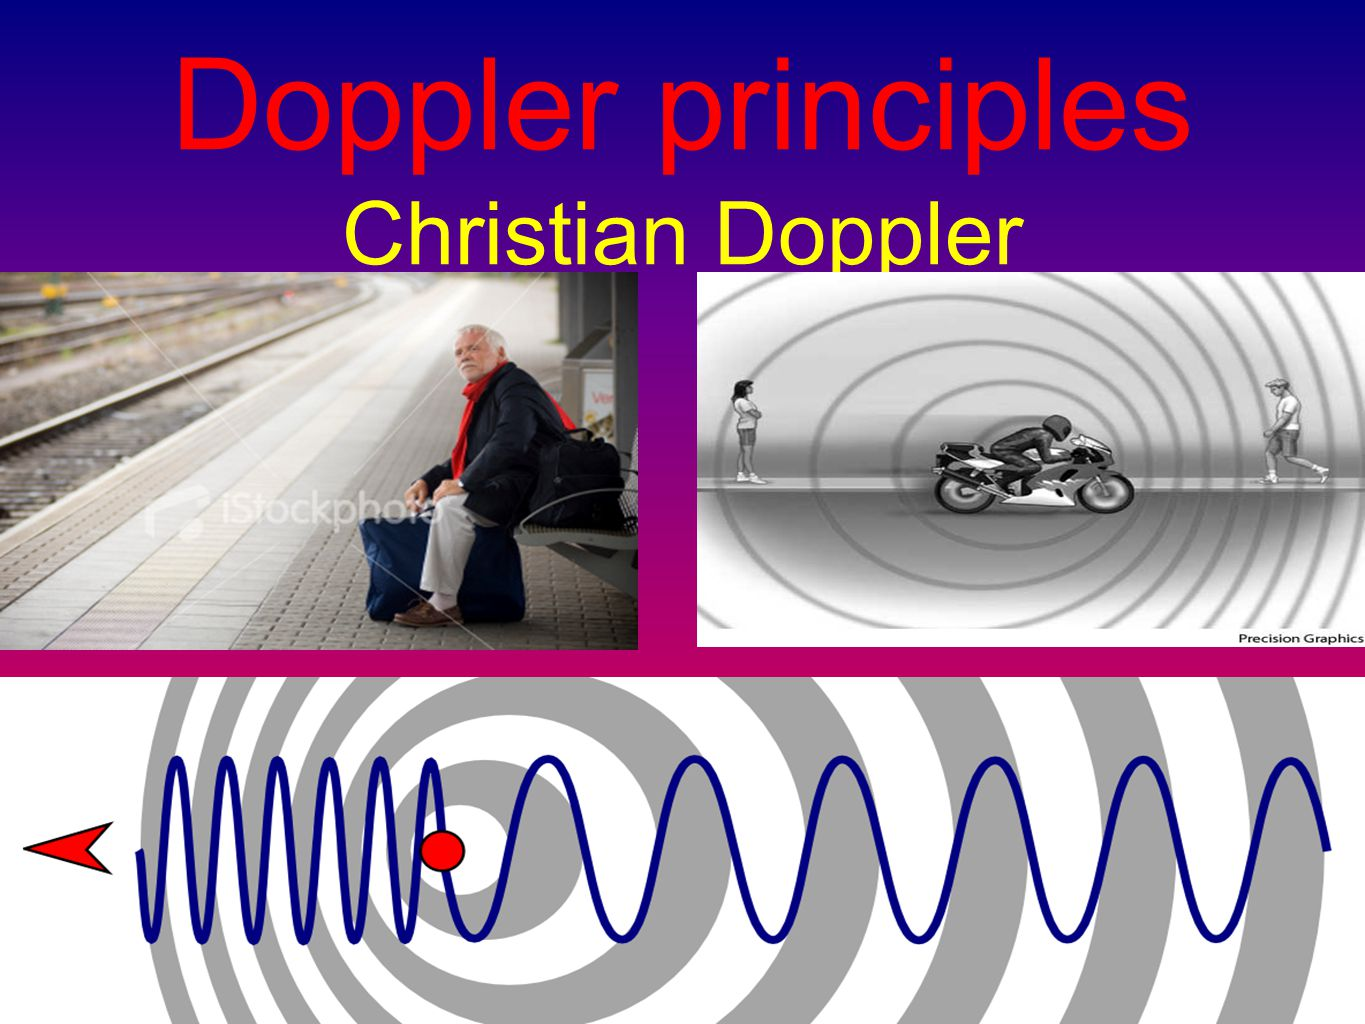 The difference between the emitted frequency and the received frequency is called: Doppler shift (fd ) Blood flow V = fd × c/2 × f0 × cos α For practical application in Doppler echocardiography: the emitted frequency (f0) is known and the velocity of sound (c/2) is constant at 1540 m/s.